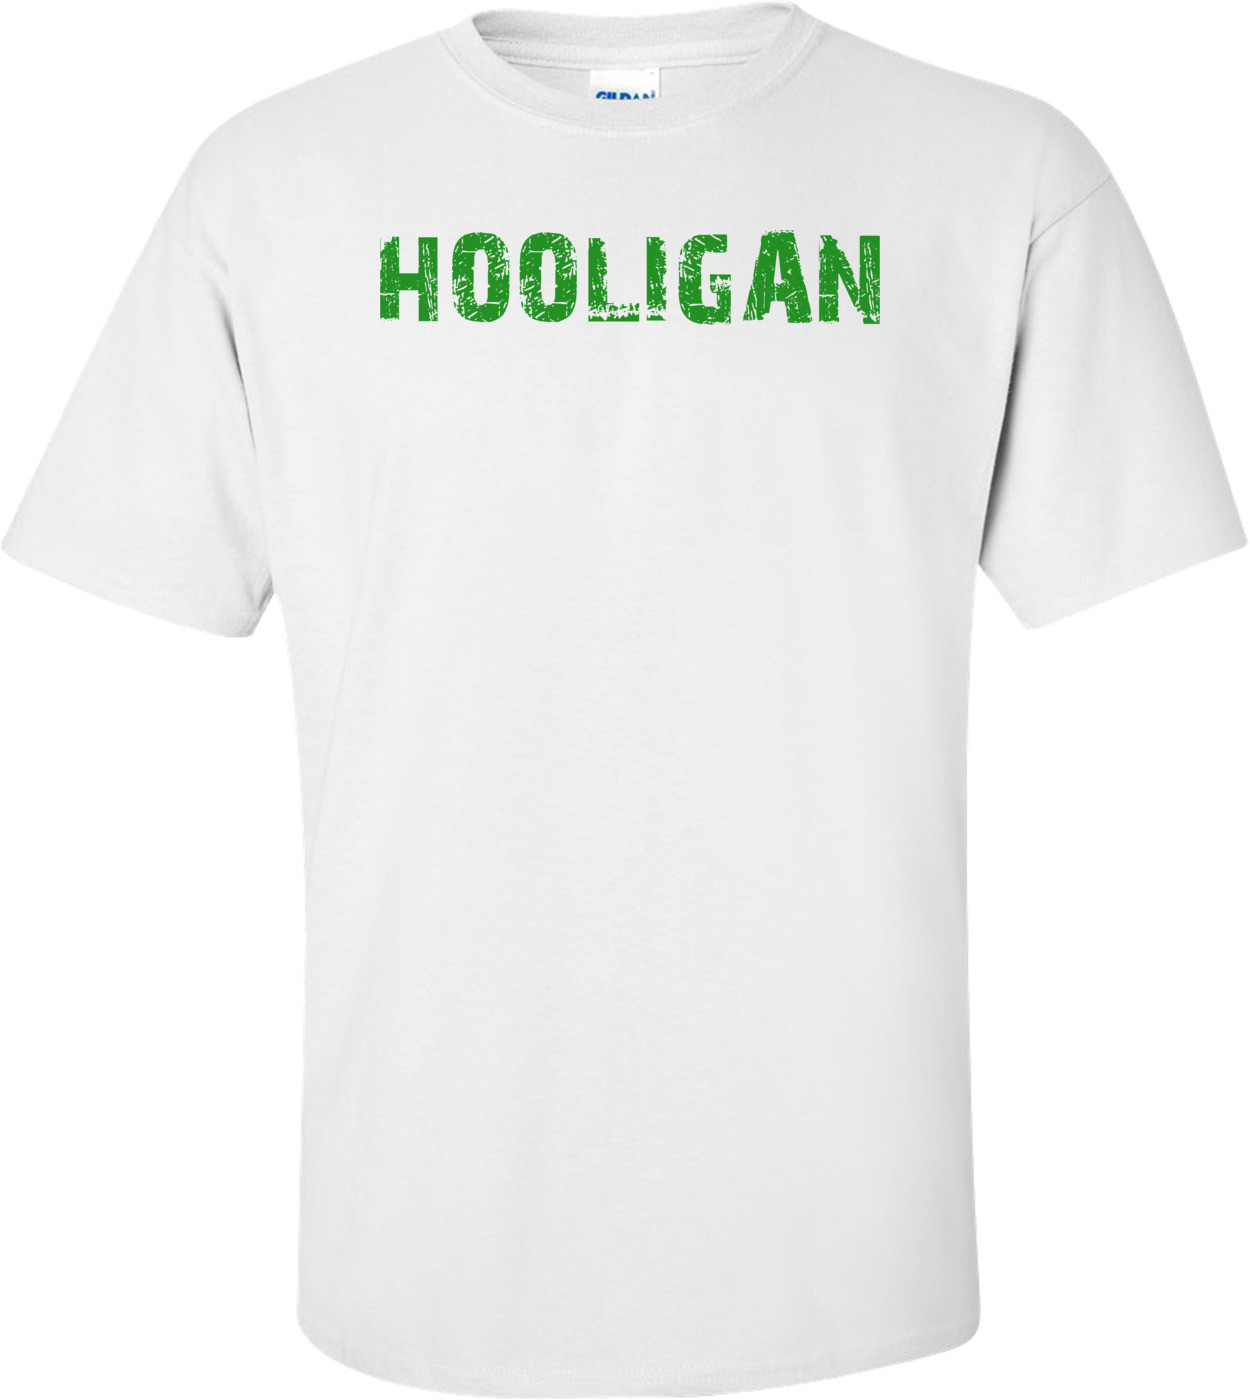 HOOLIGAN Shirt